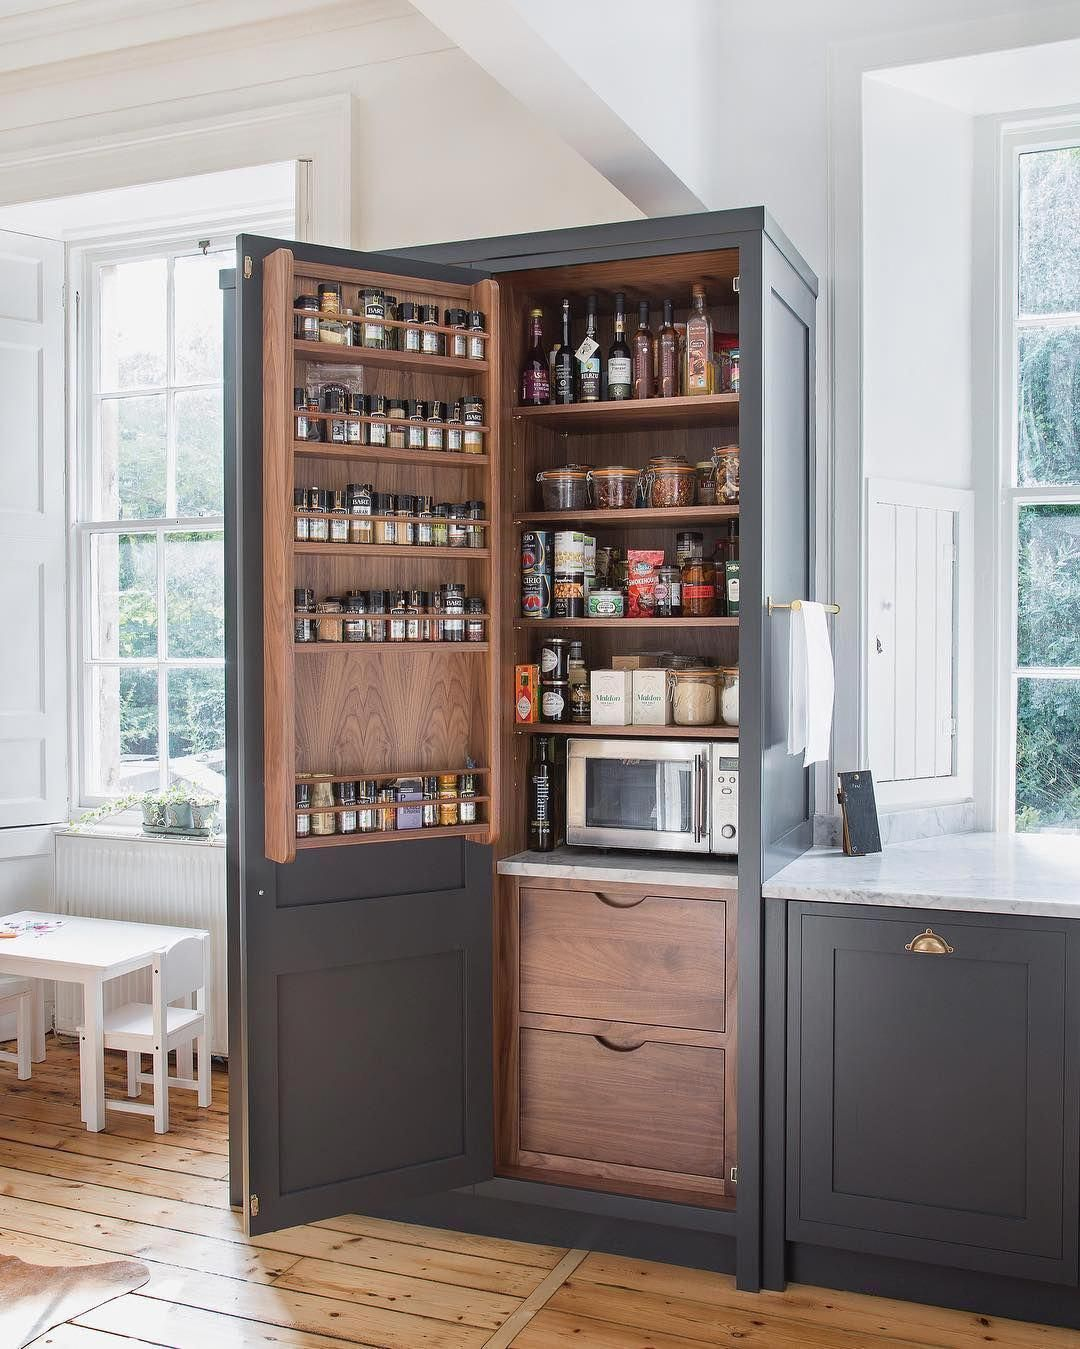 Farmhouse Style Kitchen Cabinets Have A Strong Rustic Appeal Rugged Elements A Farmhouse Style Kitchen Kitchen Cabinet Styles Farmhouse Style Kitchen Cabinets